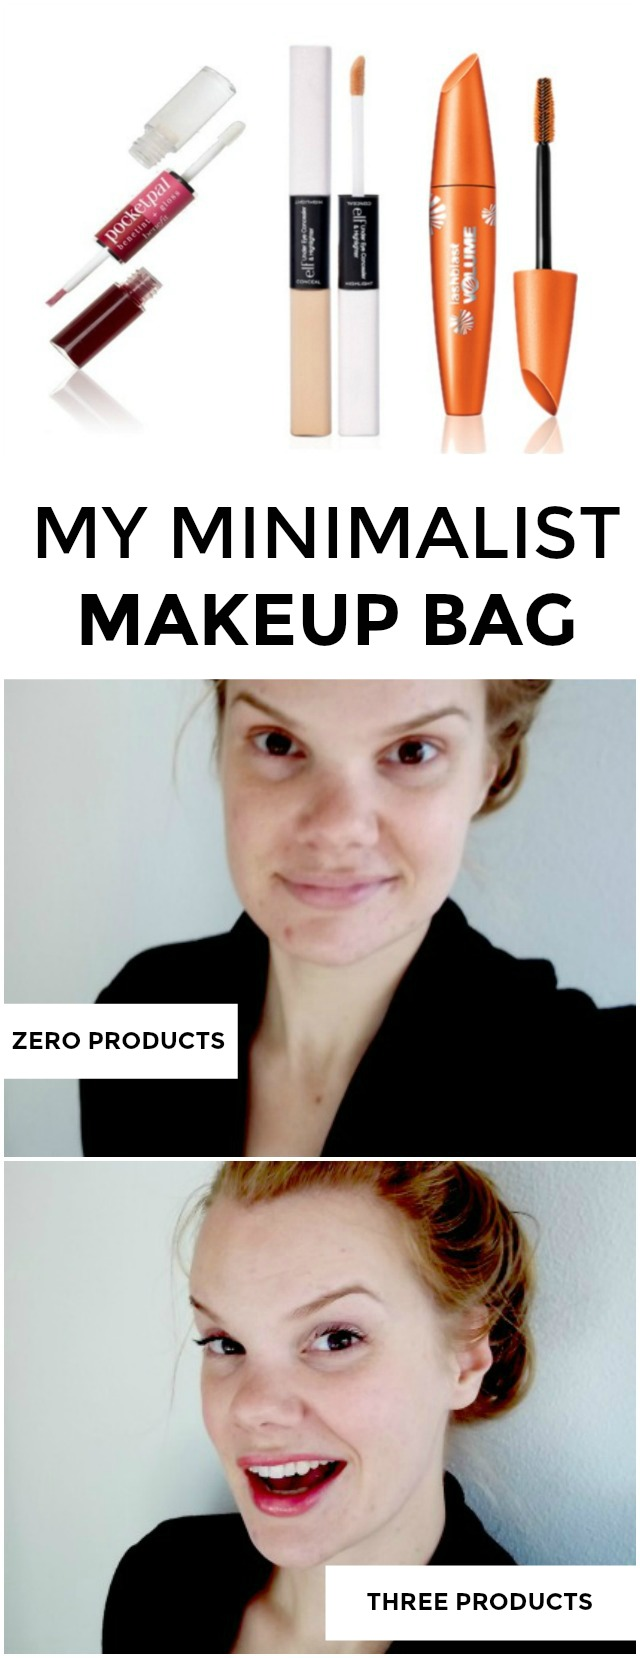 Trying to create a more minimalist makeup bag? Looking for travel makeup that won't take up tons of space? These are the three products I absolutely swear by for travel and run-to-Target situations!